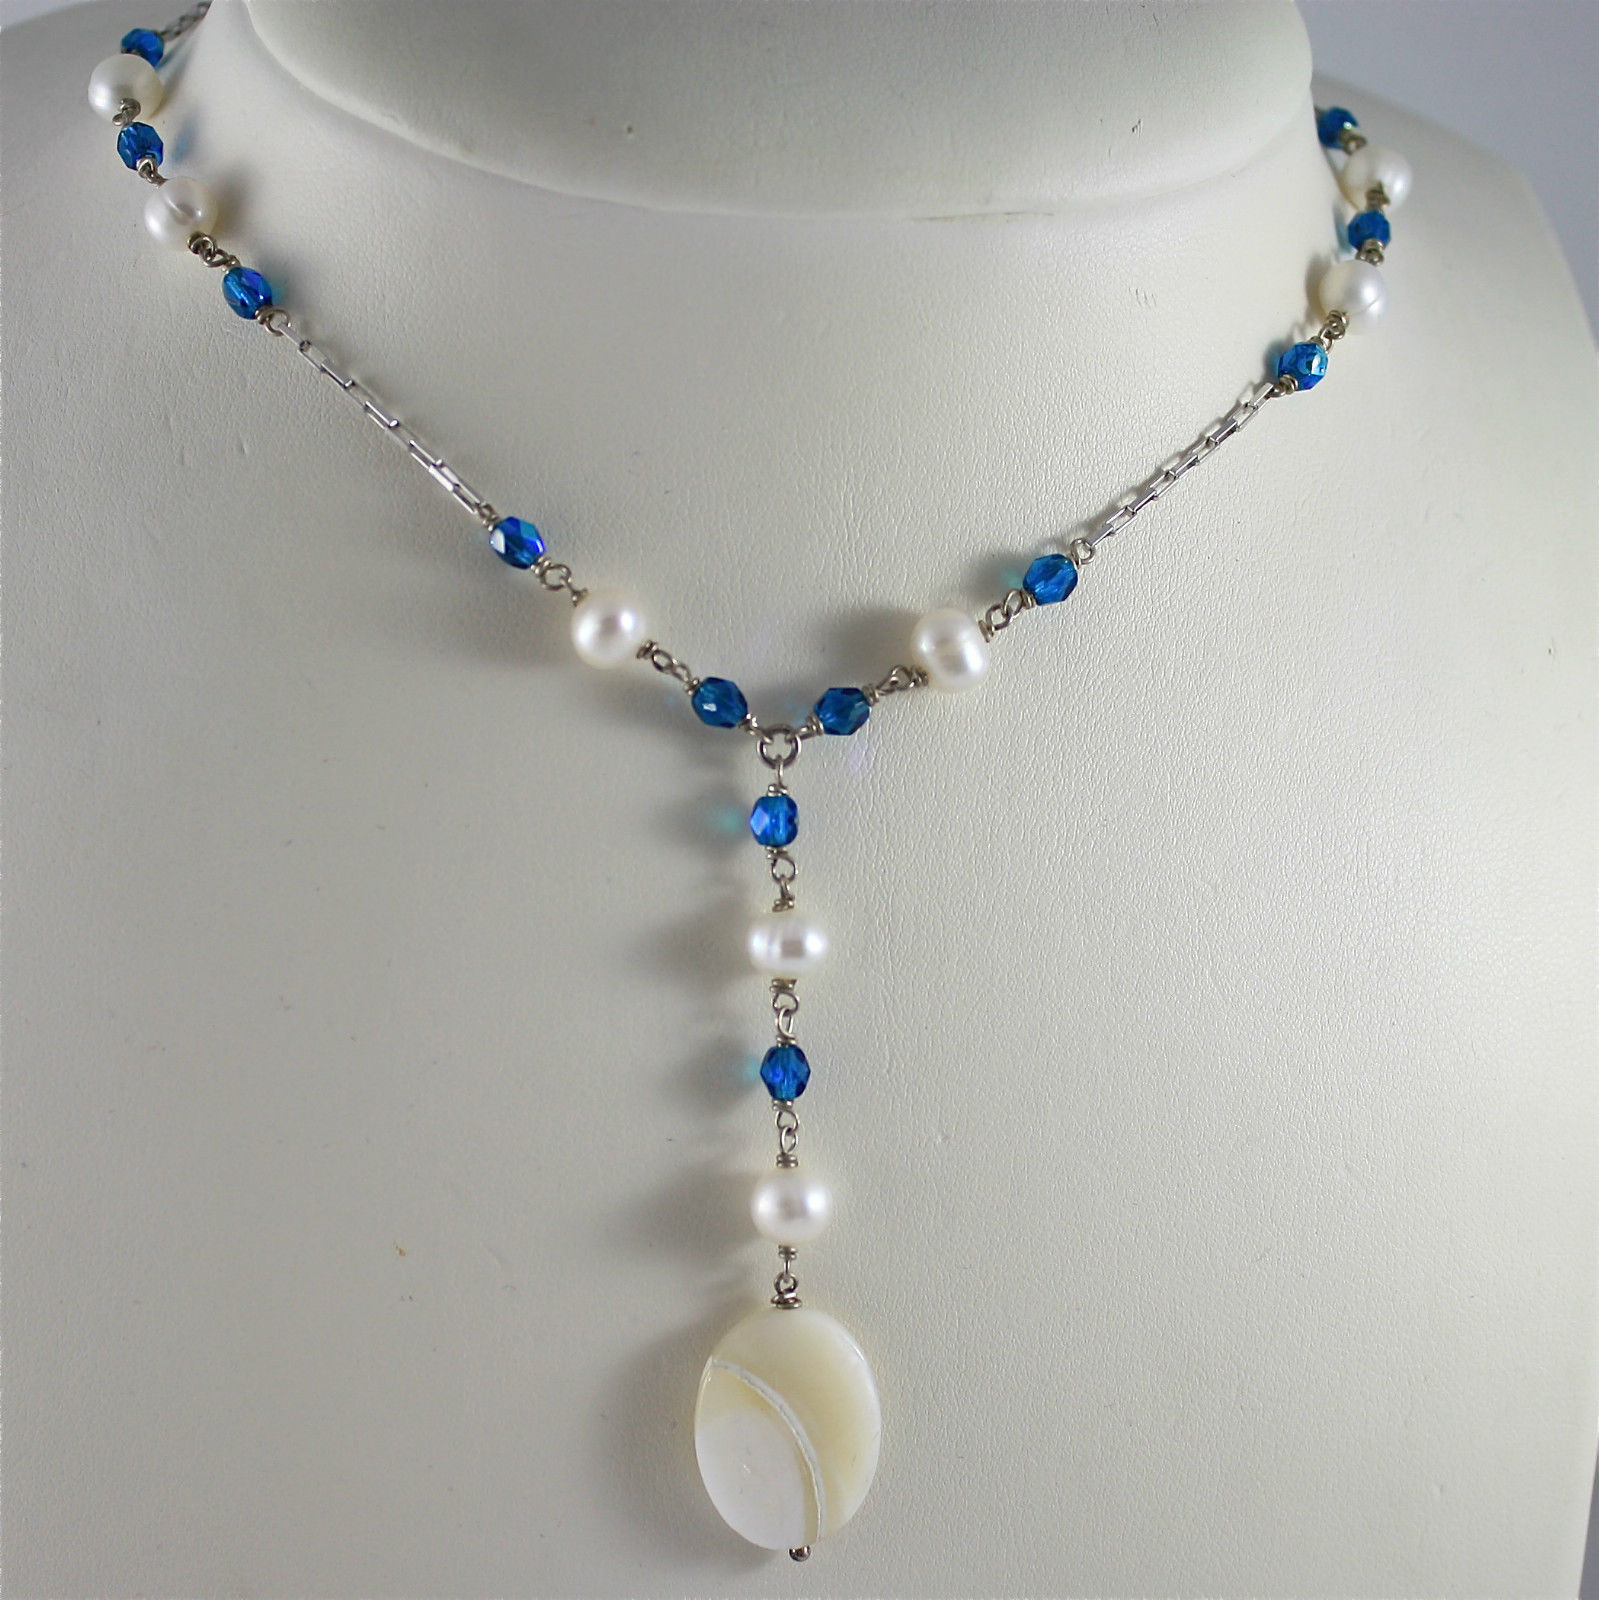 .925 RHODIUM SILVER NECKLACE WITH BLUE FACETED CRISTAL, WHITE PEARLS, SHELL DROP